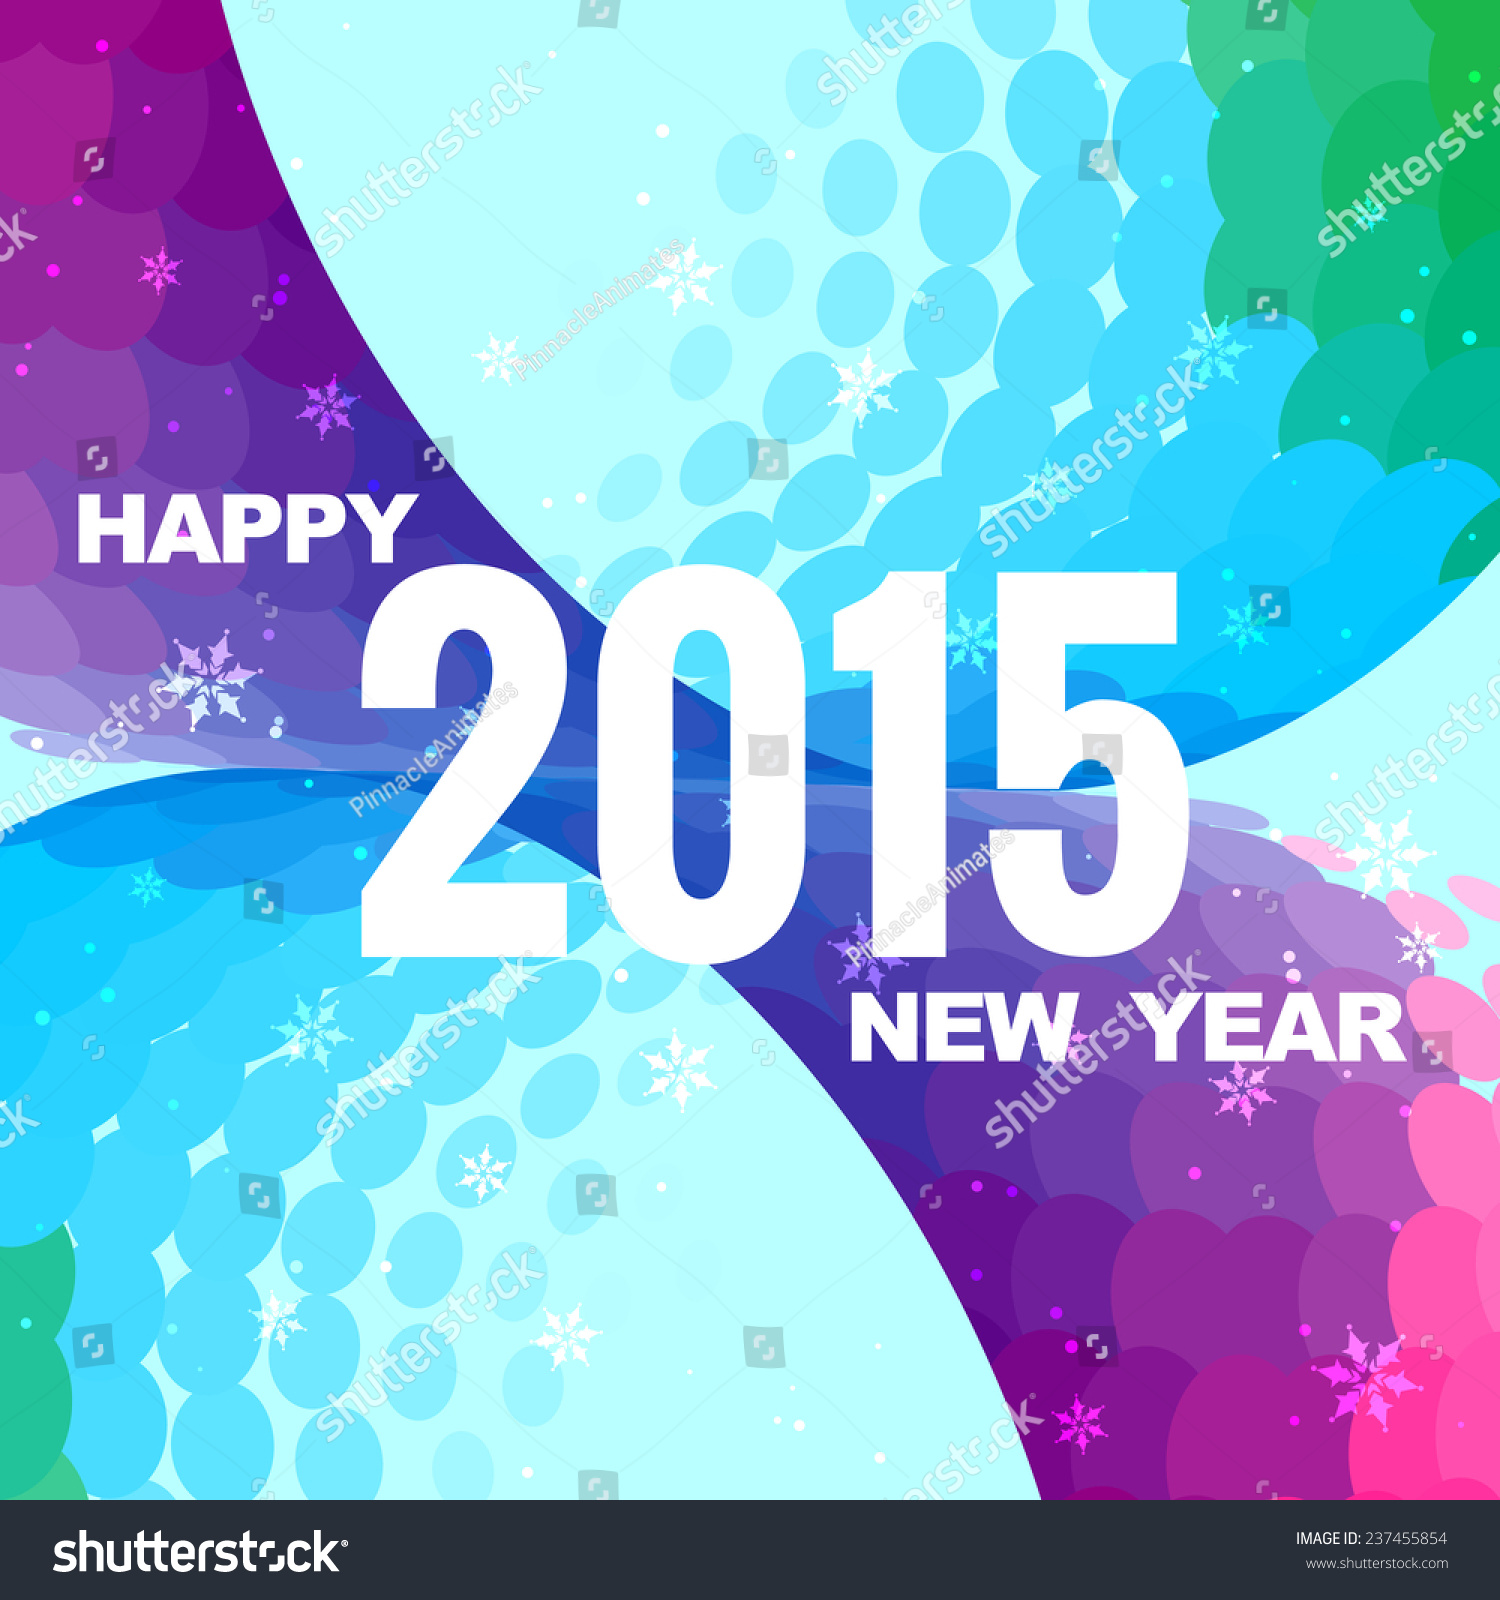 happy new year wishes with beautiful purple and blue background